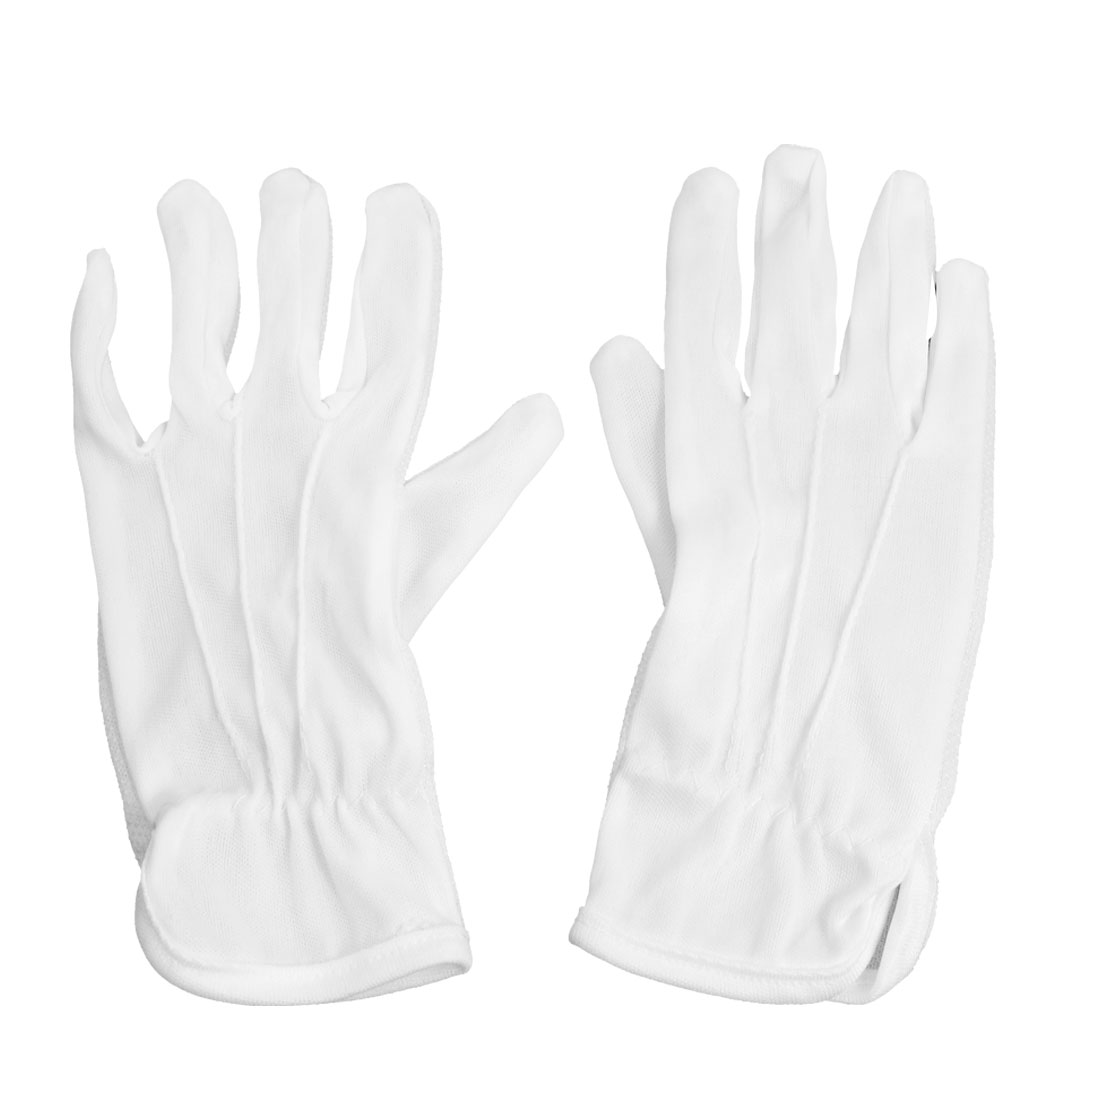 Nylon Rubber Non Slip Design Driving Industry Working Gloves White Pair